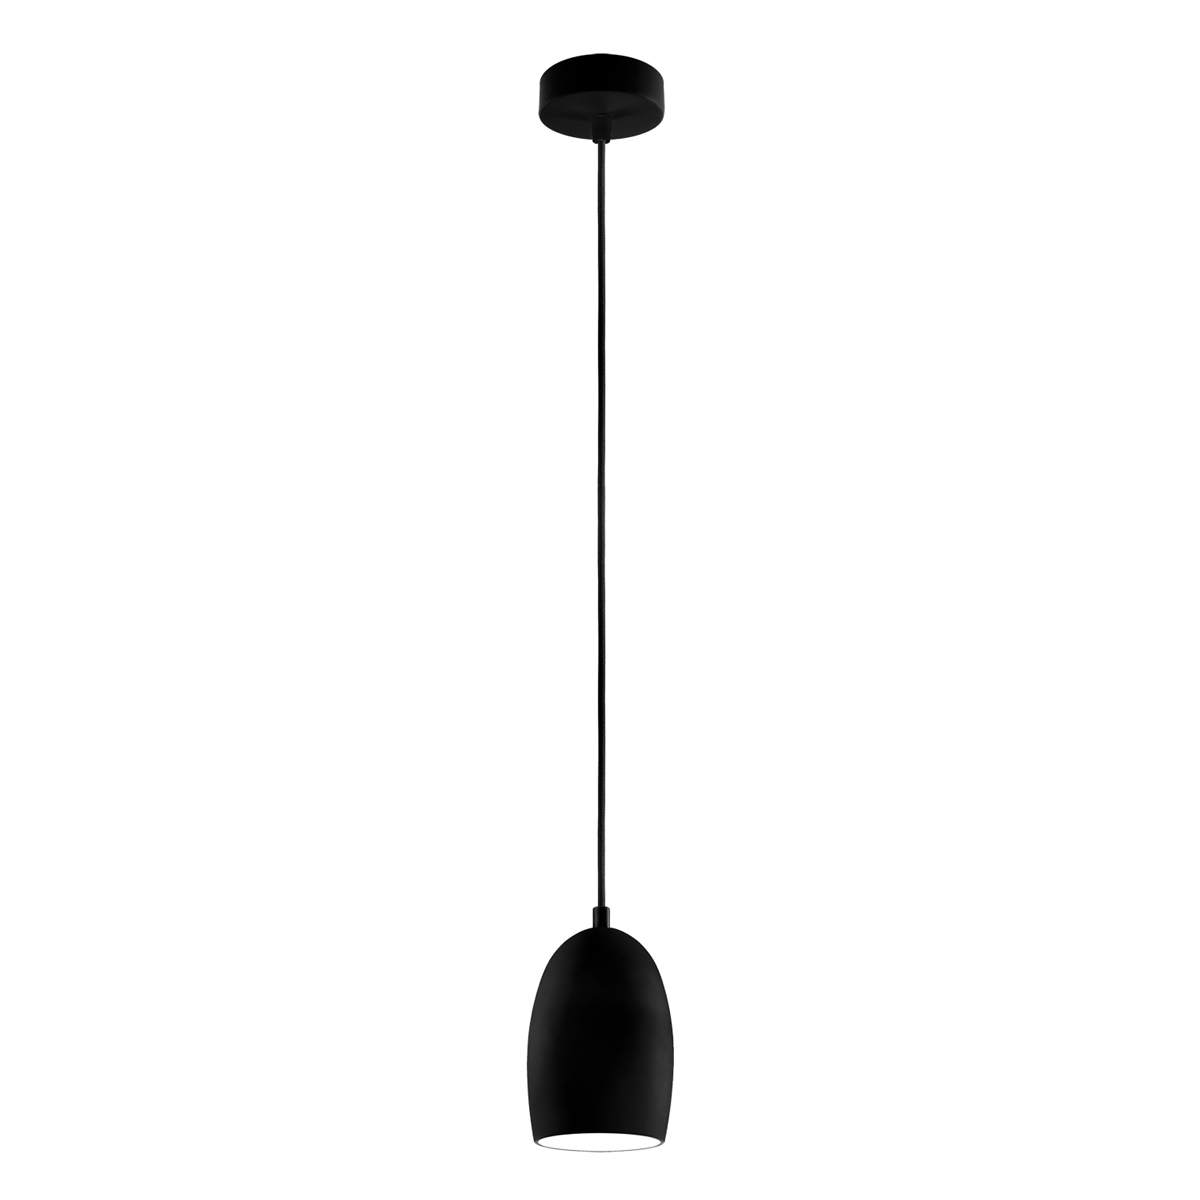 petite suspension cloche avec abat jour mat lampe modulable avec de nombreuses options. Black Bedroom Furniture Sets. Home Design Ideas